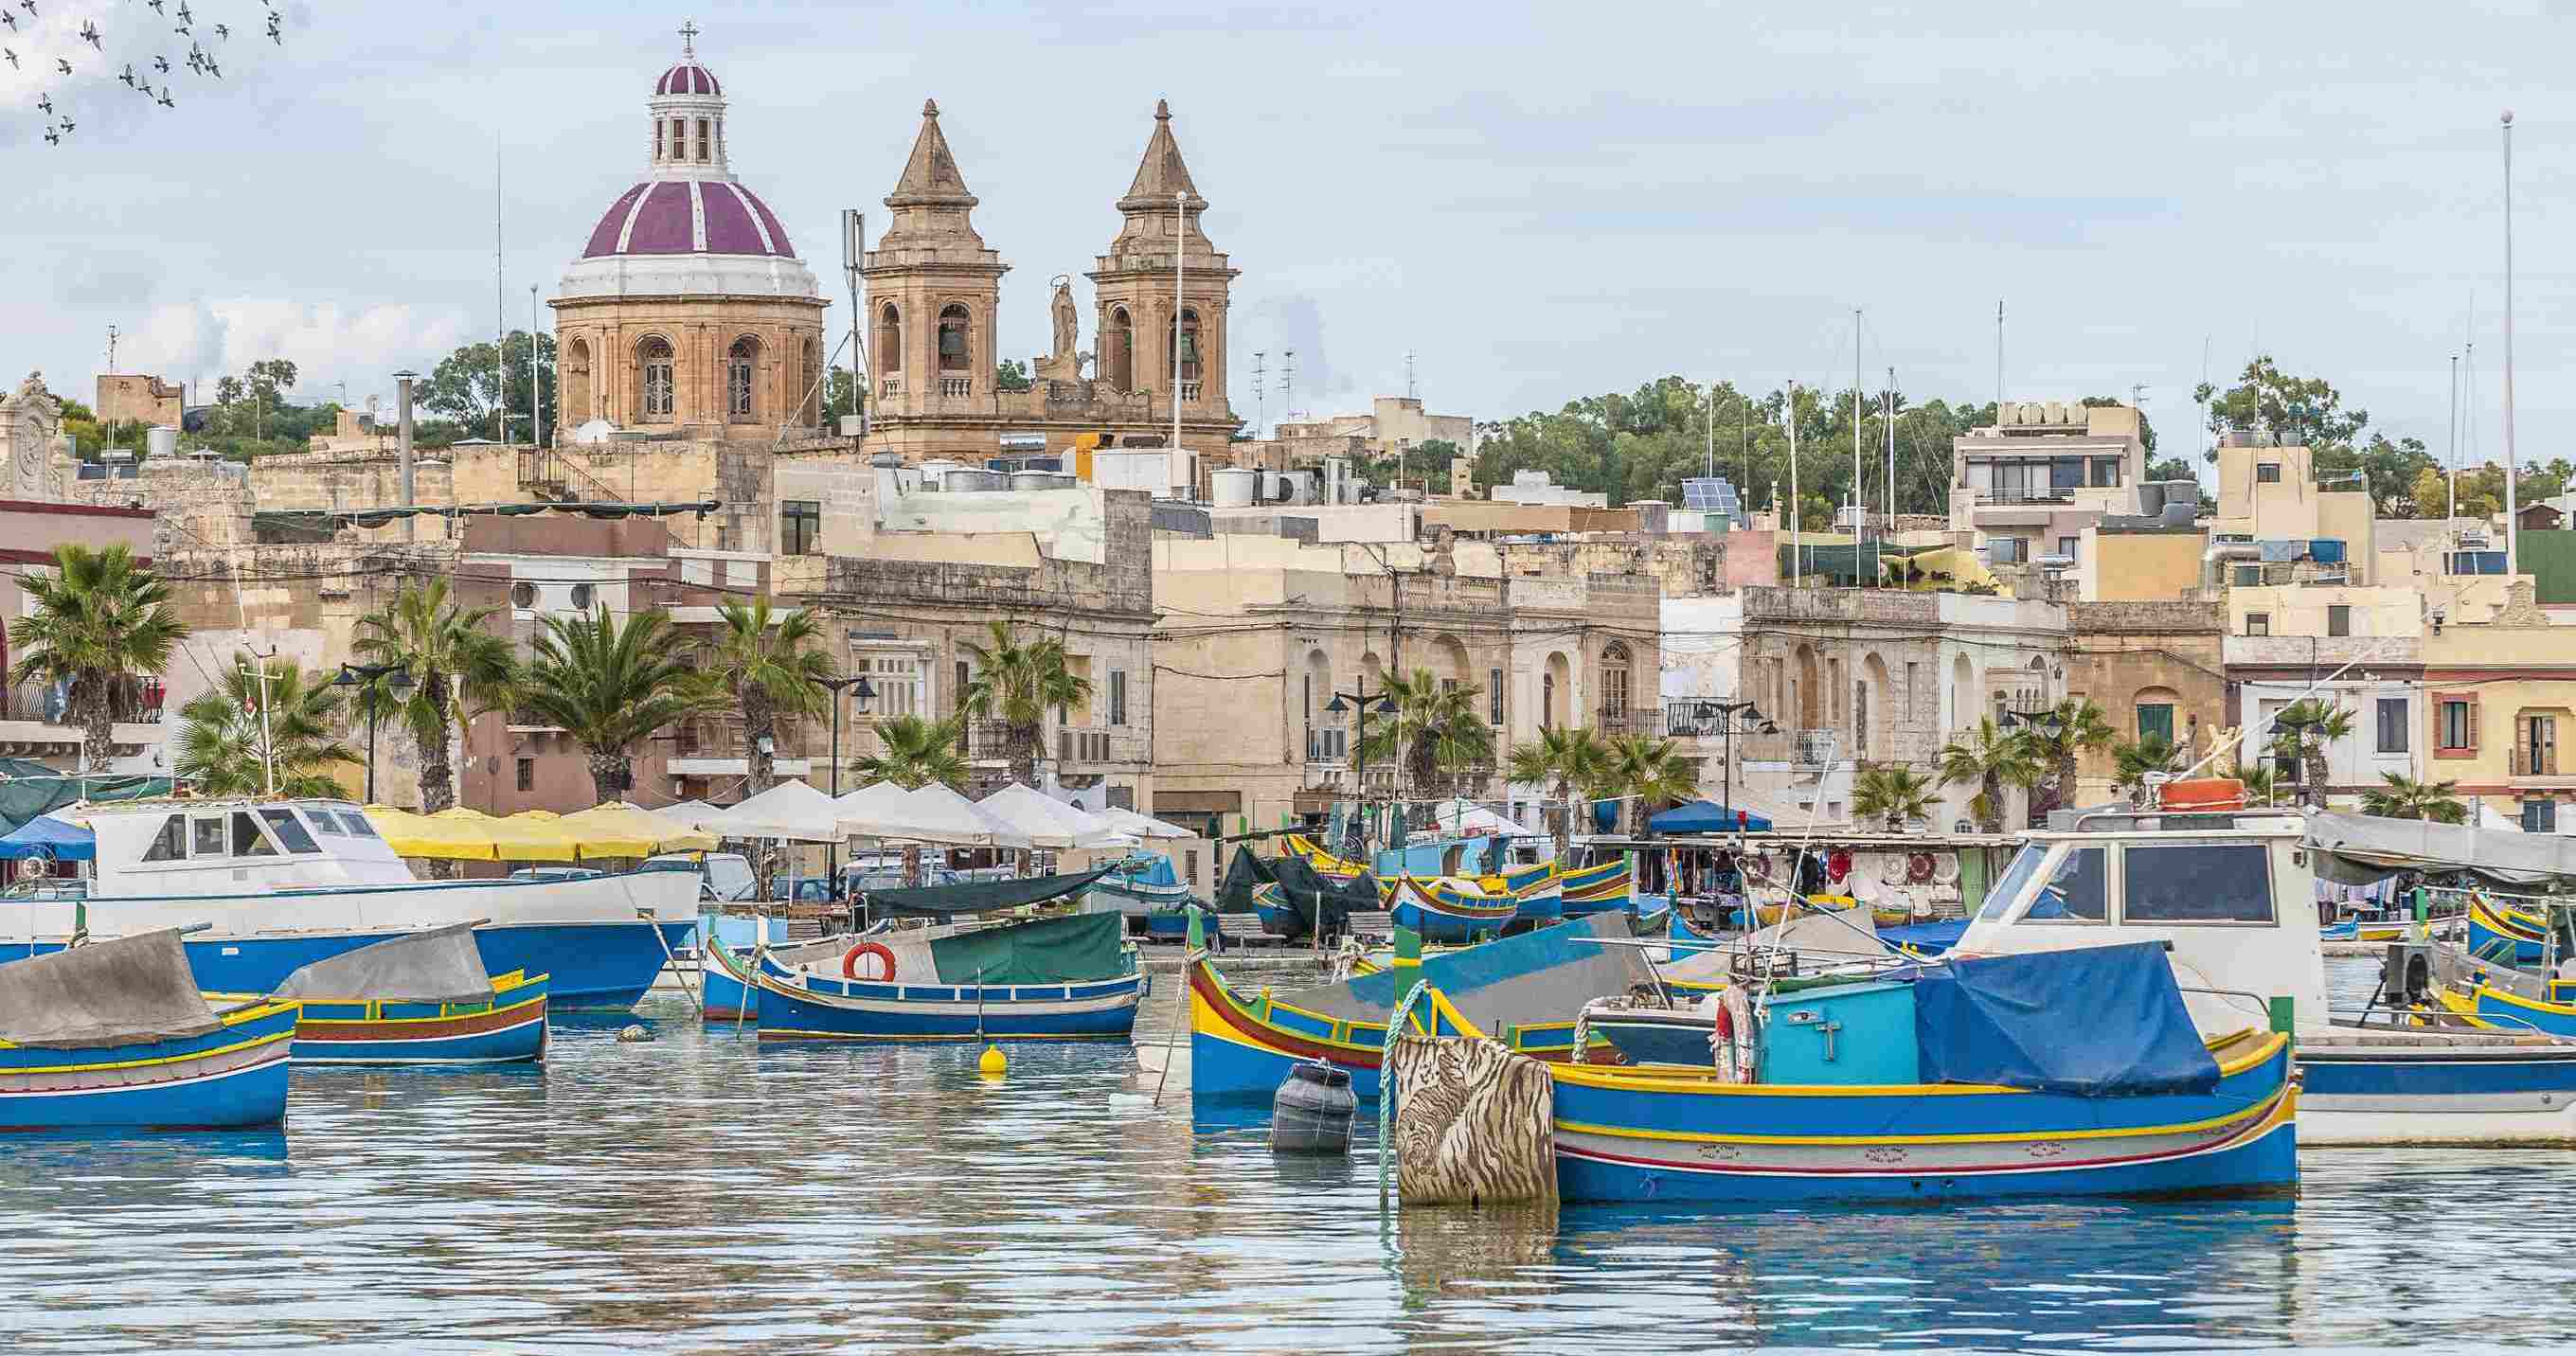 Harbor of Marsaxlokk